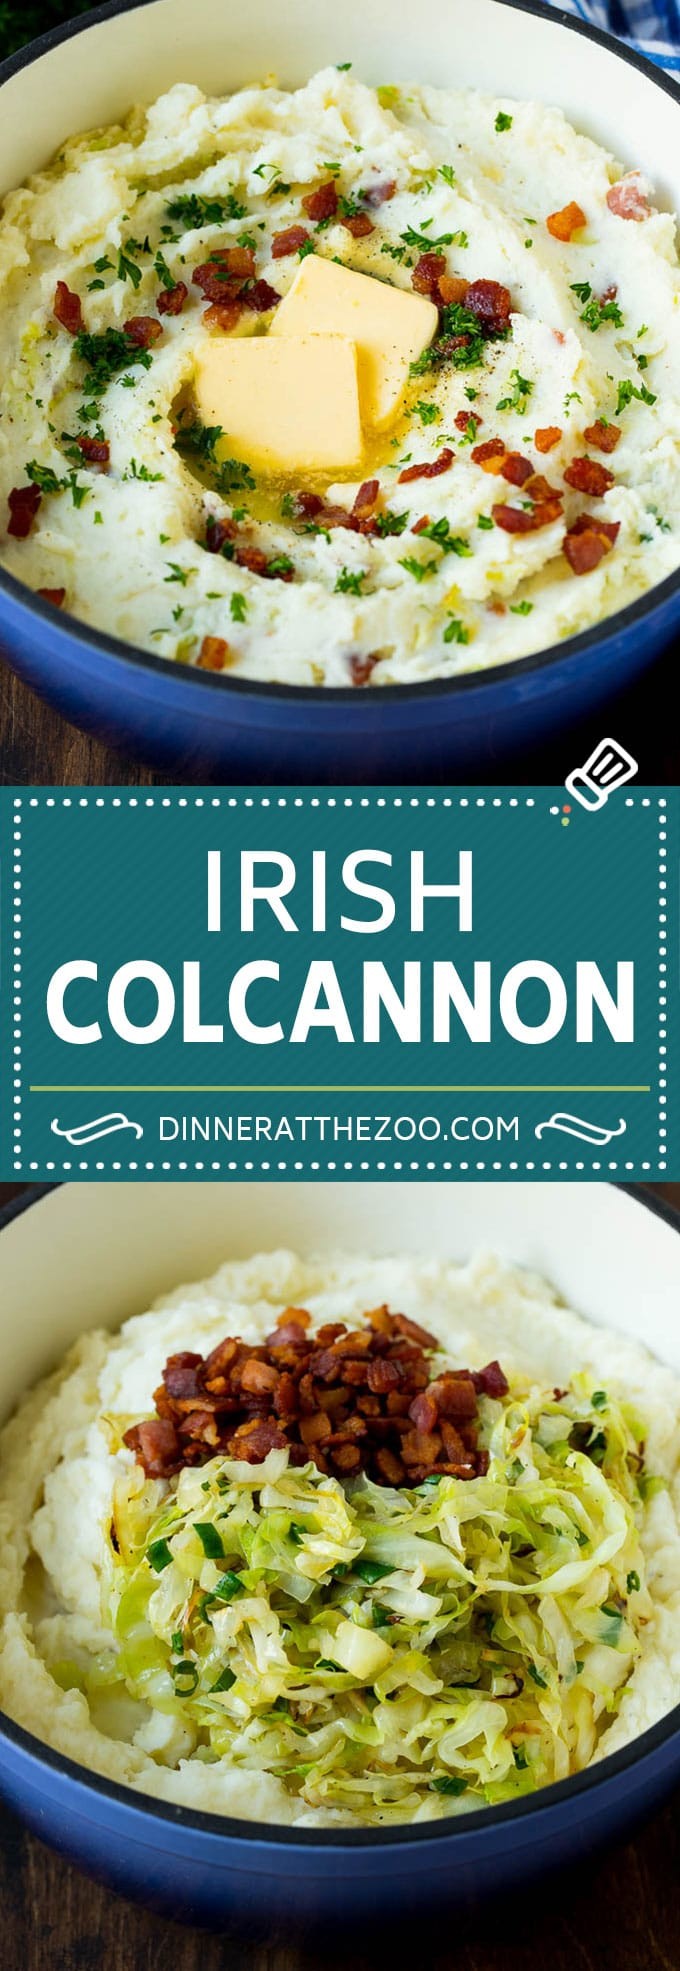 Colcannon Recipe | Mashed Potatoes #potatoes #cabbage #bacon #sidedish #stpatricksday #dinner #dinneratthezoo